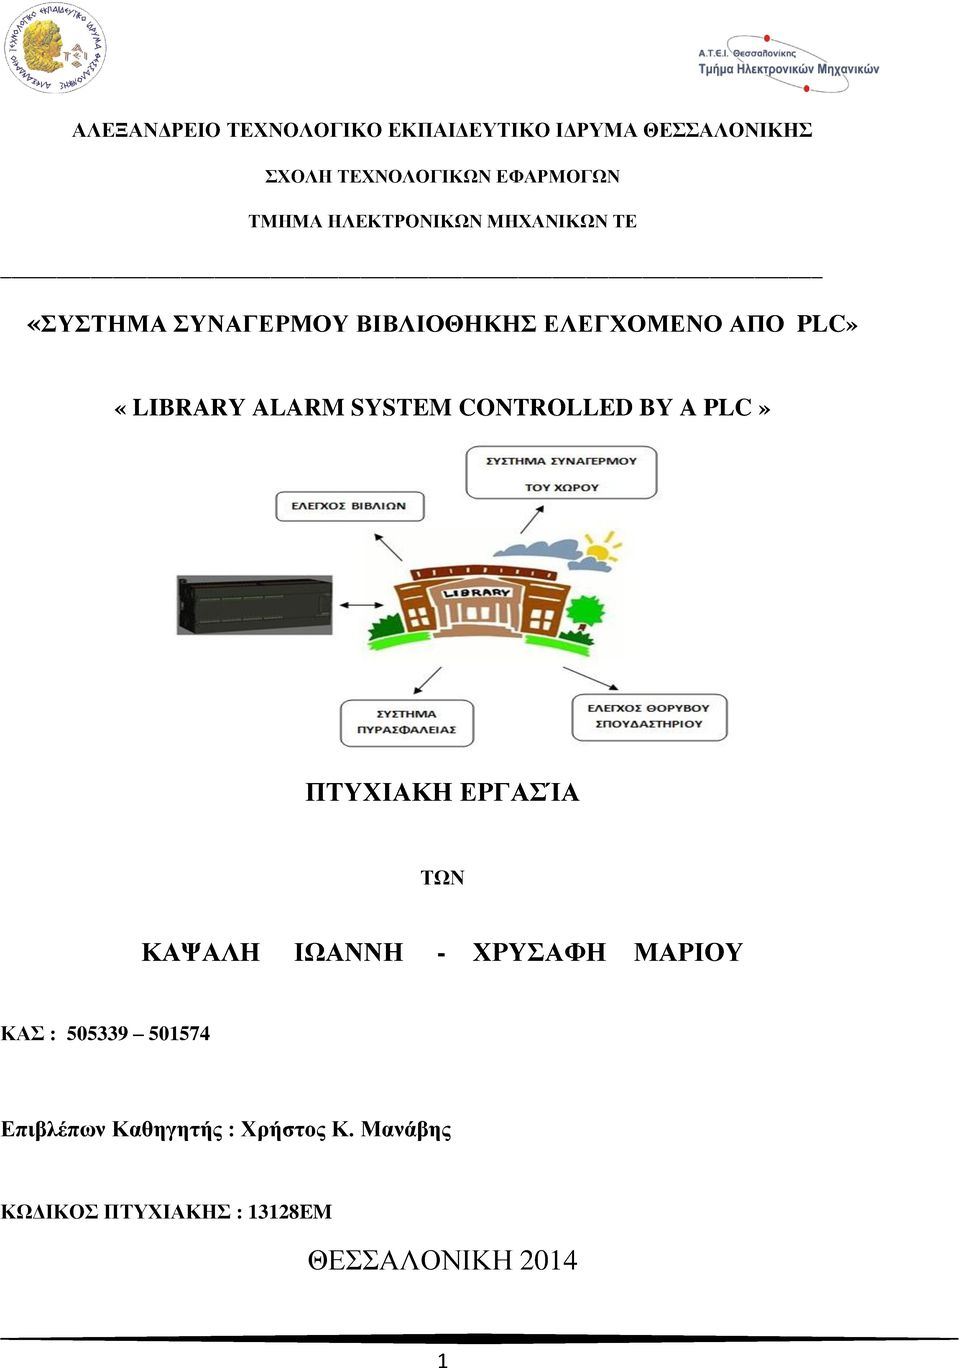 SYSTEM CONTROLLED BY A PLC» ΠΣΤΥΗΑΚΖ ΔΡΓΑΊΑ ΣΧΝ ΚΑΦΑΛΖ ΗΧΑΝΝΖ - ΥΡΤΑΦΖ ΜΑΡΗΟΤ ΚΑ : 505339